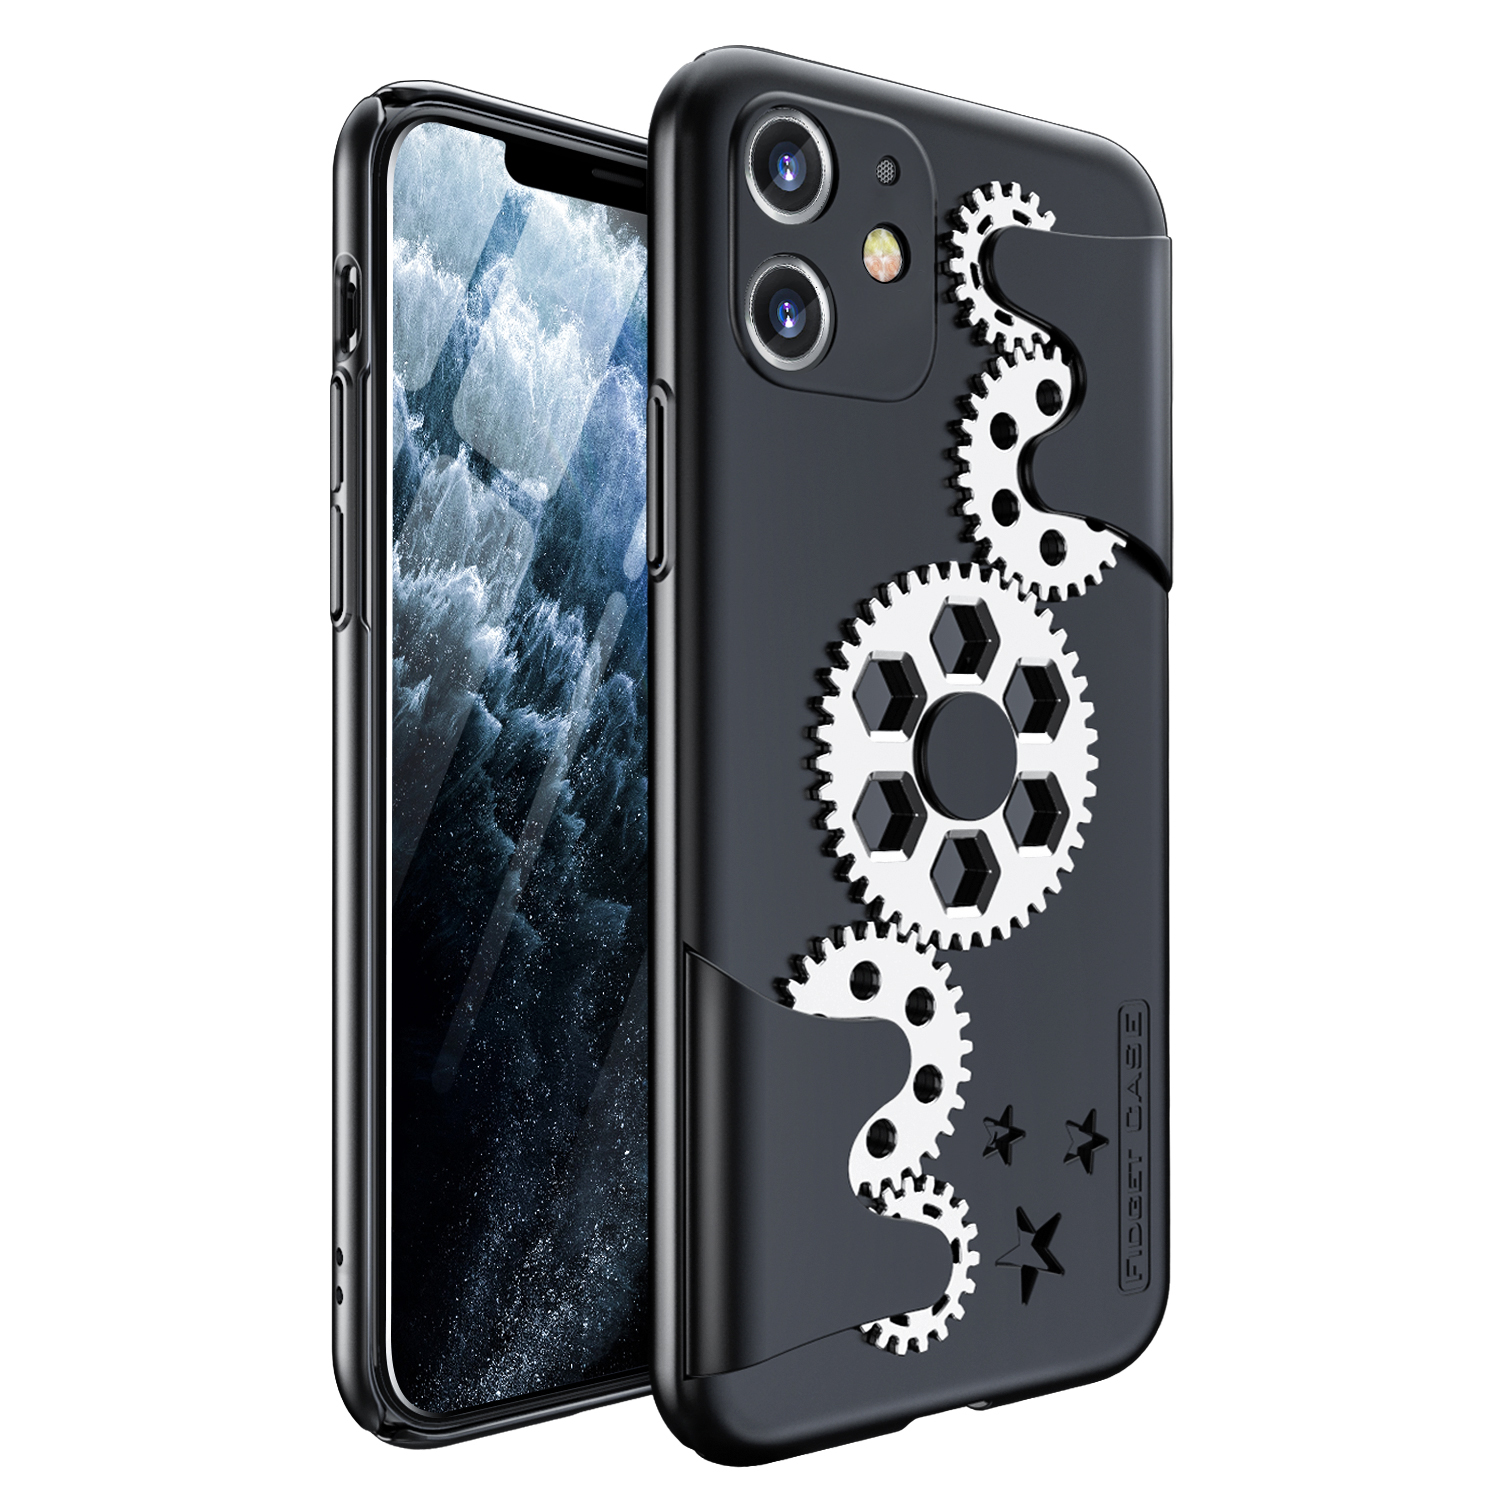 GKK Case for iPhone 11 mechanist new design,phone cover for iPhone 11